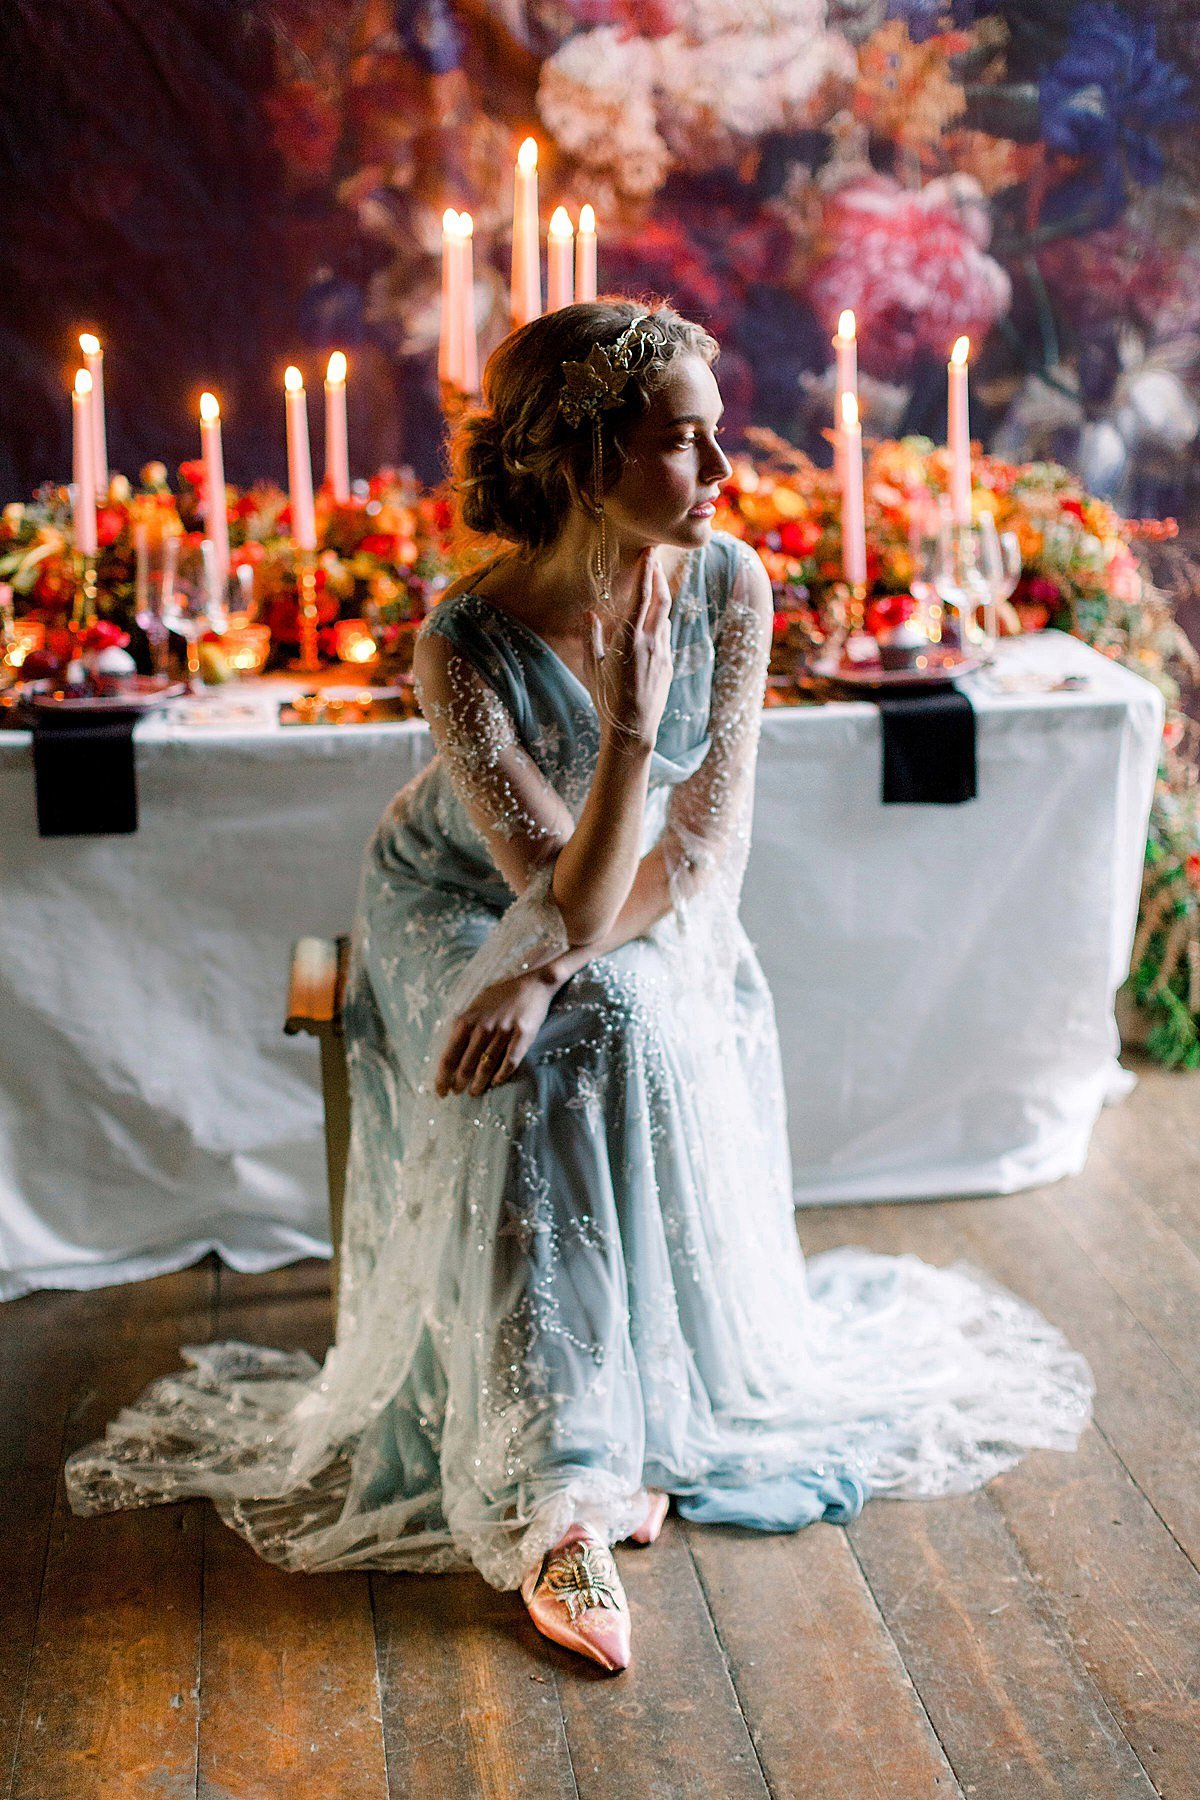 Briar-Rose-Starry-Dress-Candlelight-JFD-JoBradbury (4)